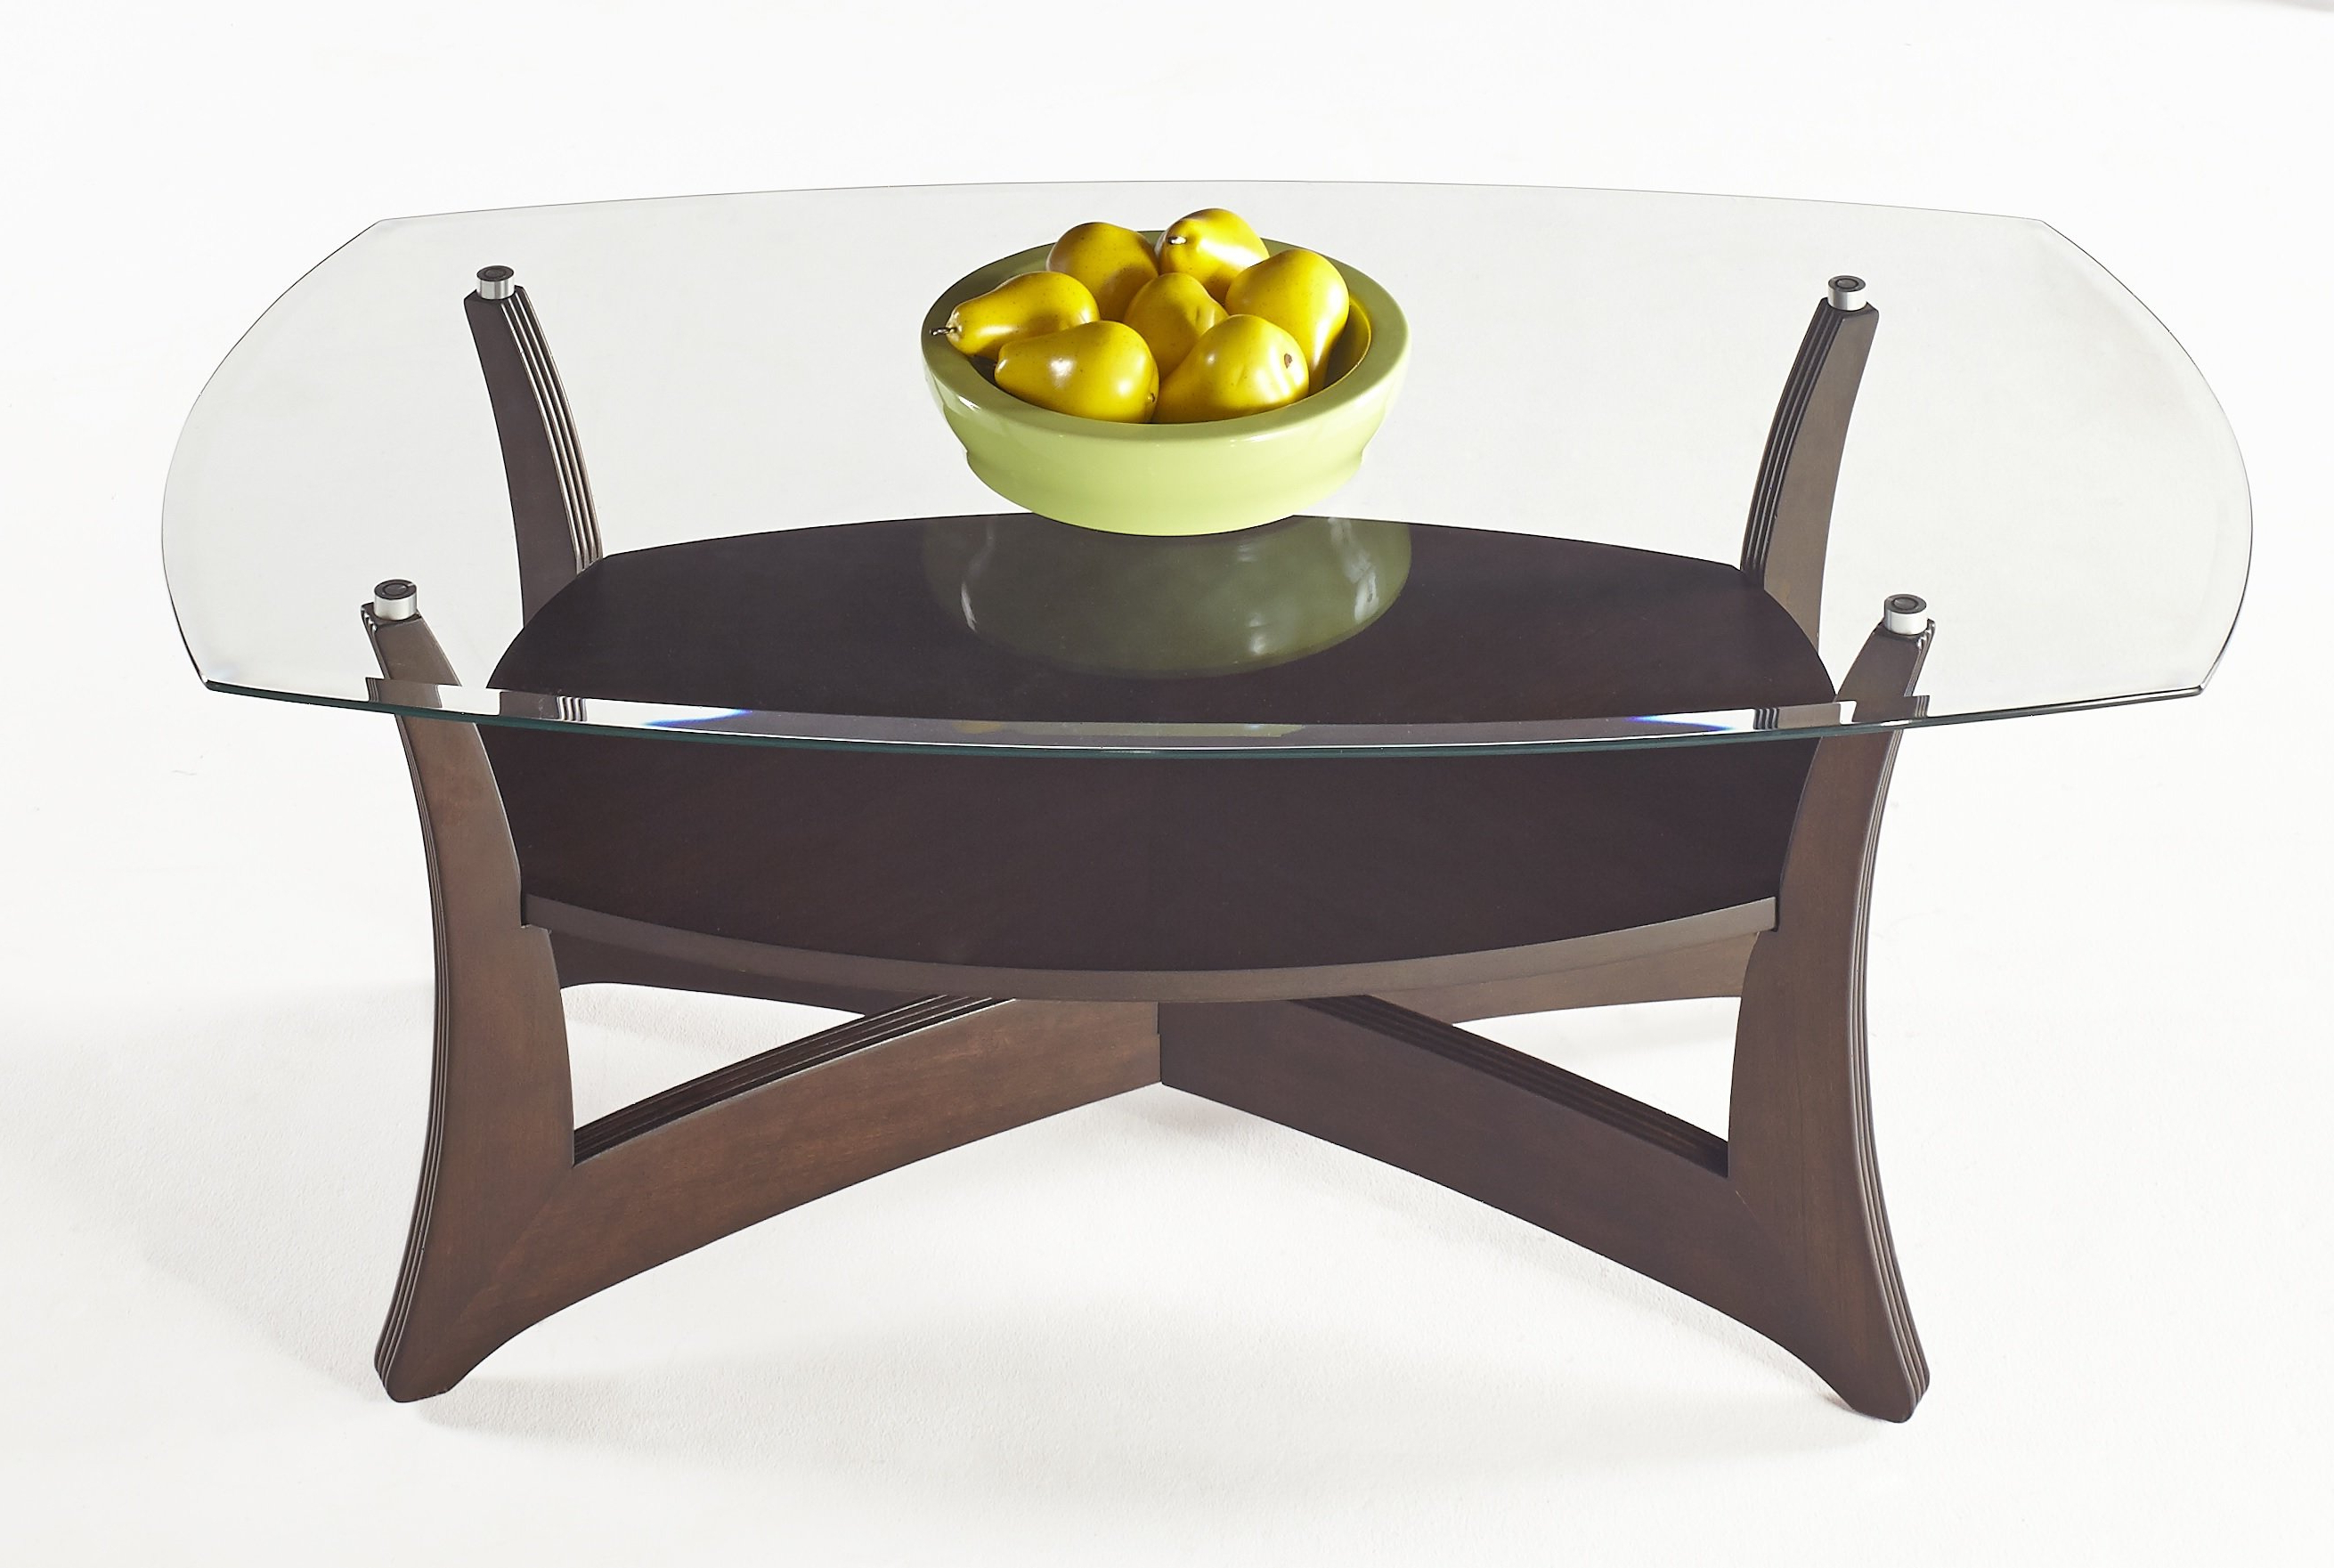 Wayfair With Regard To Contemporary Curves Coffee Tables (View 17 of 20)